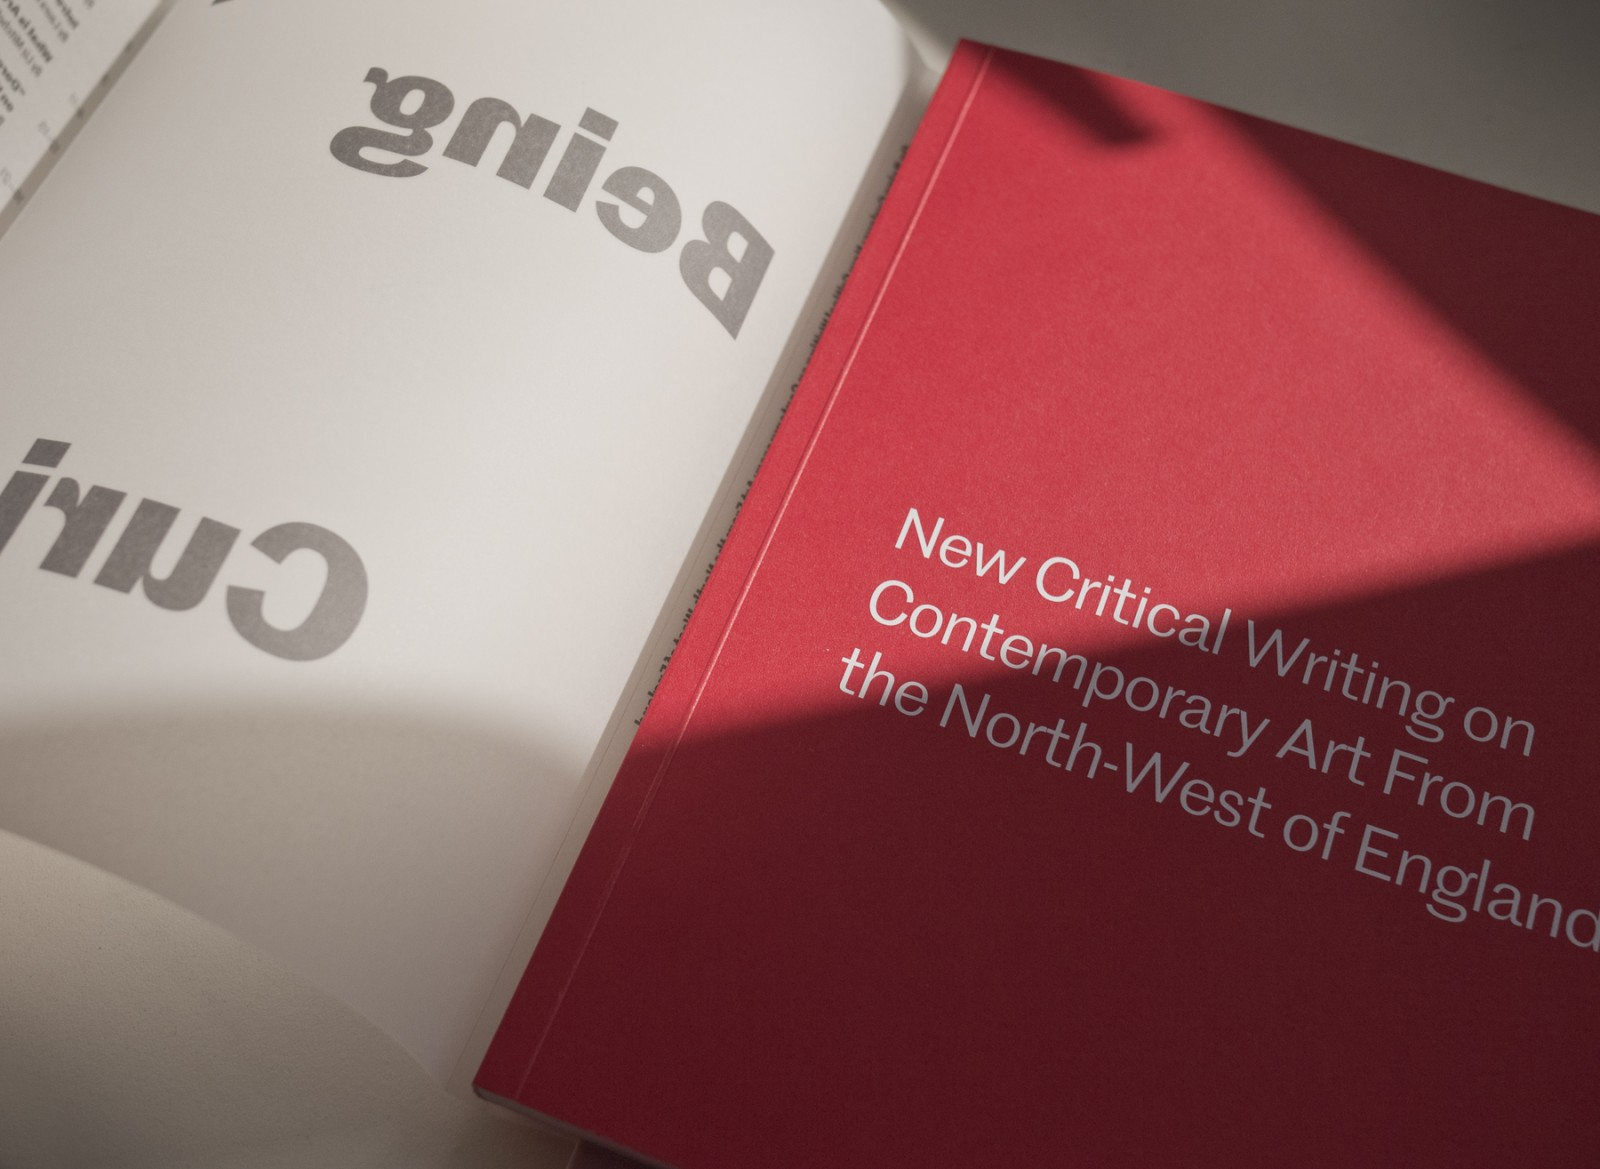 On Being Curious: New Critical Writing on Contemporary Art From the North-West of England